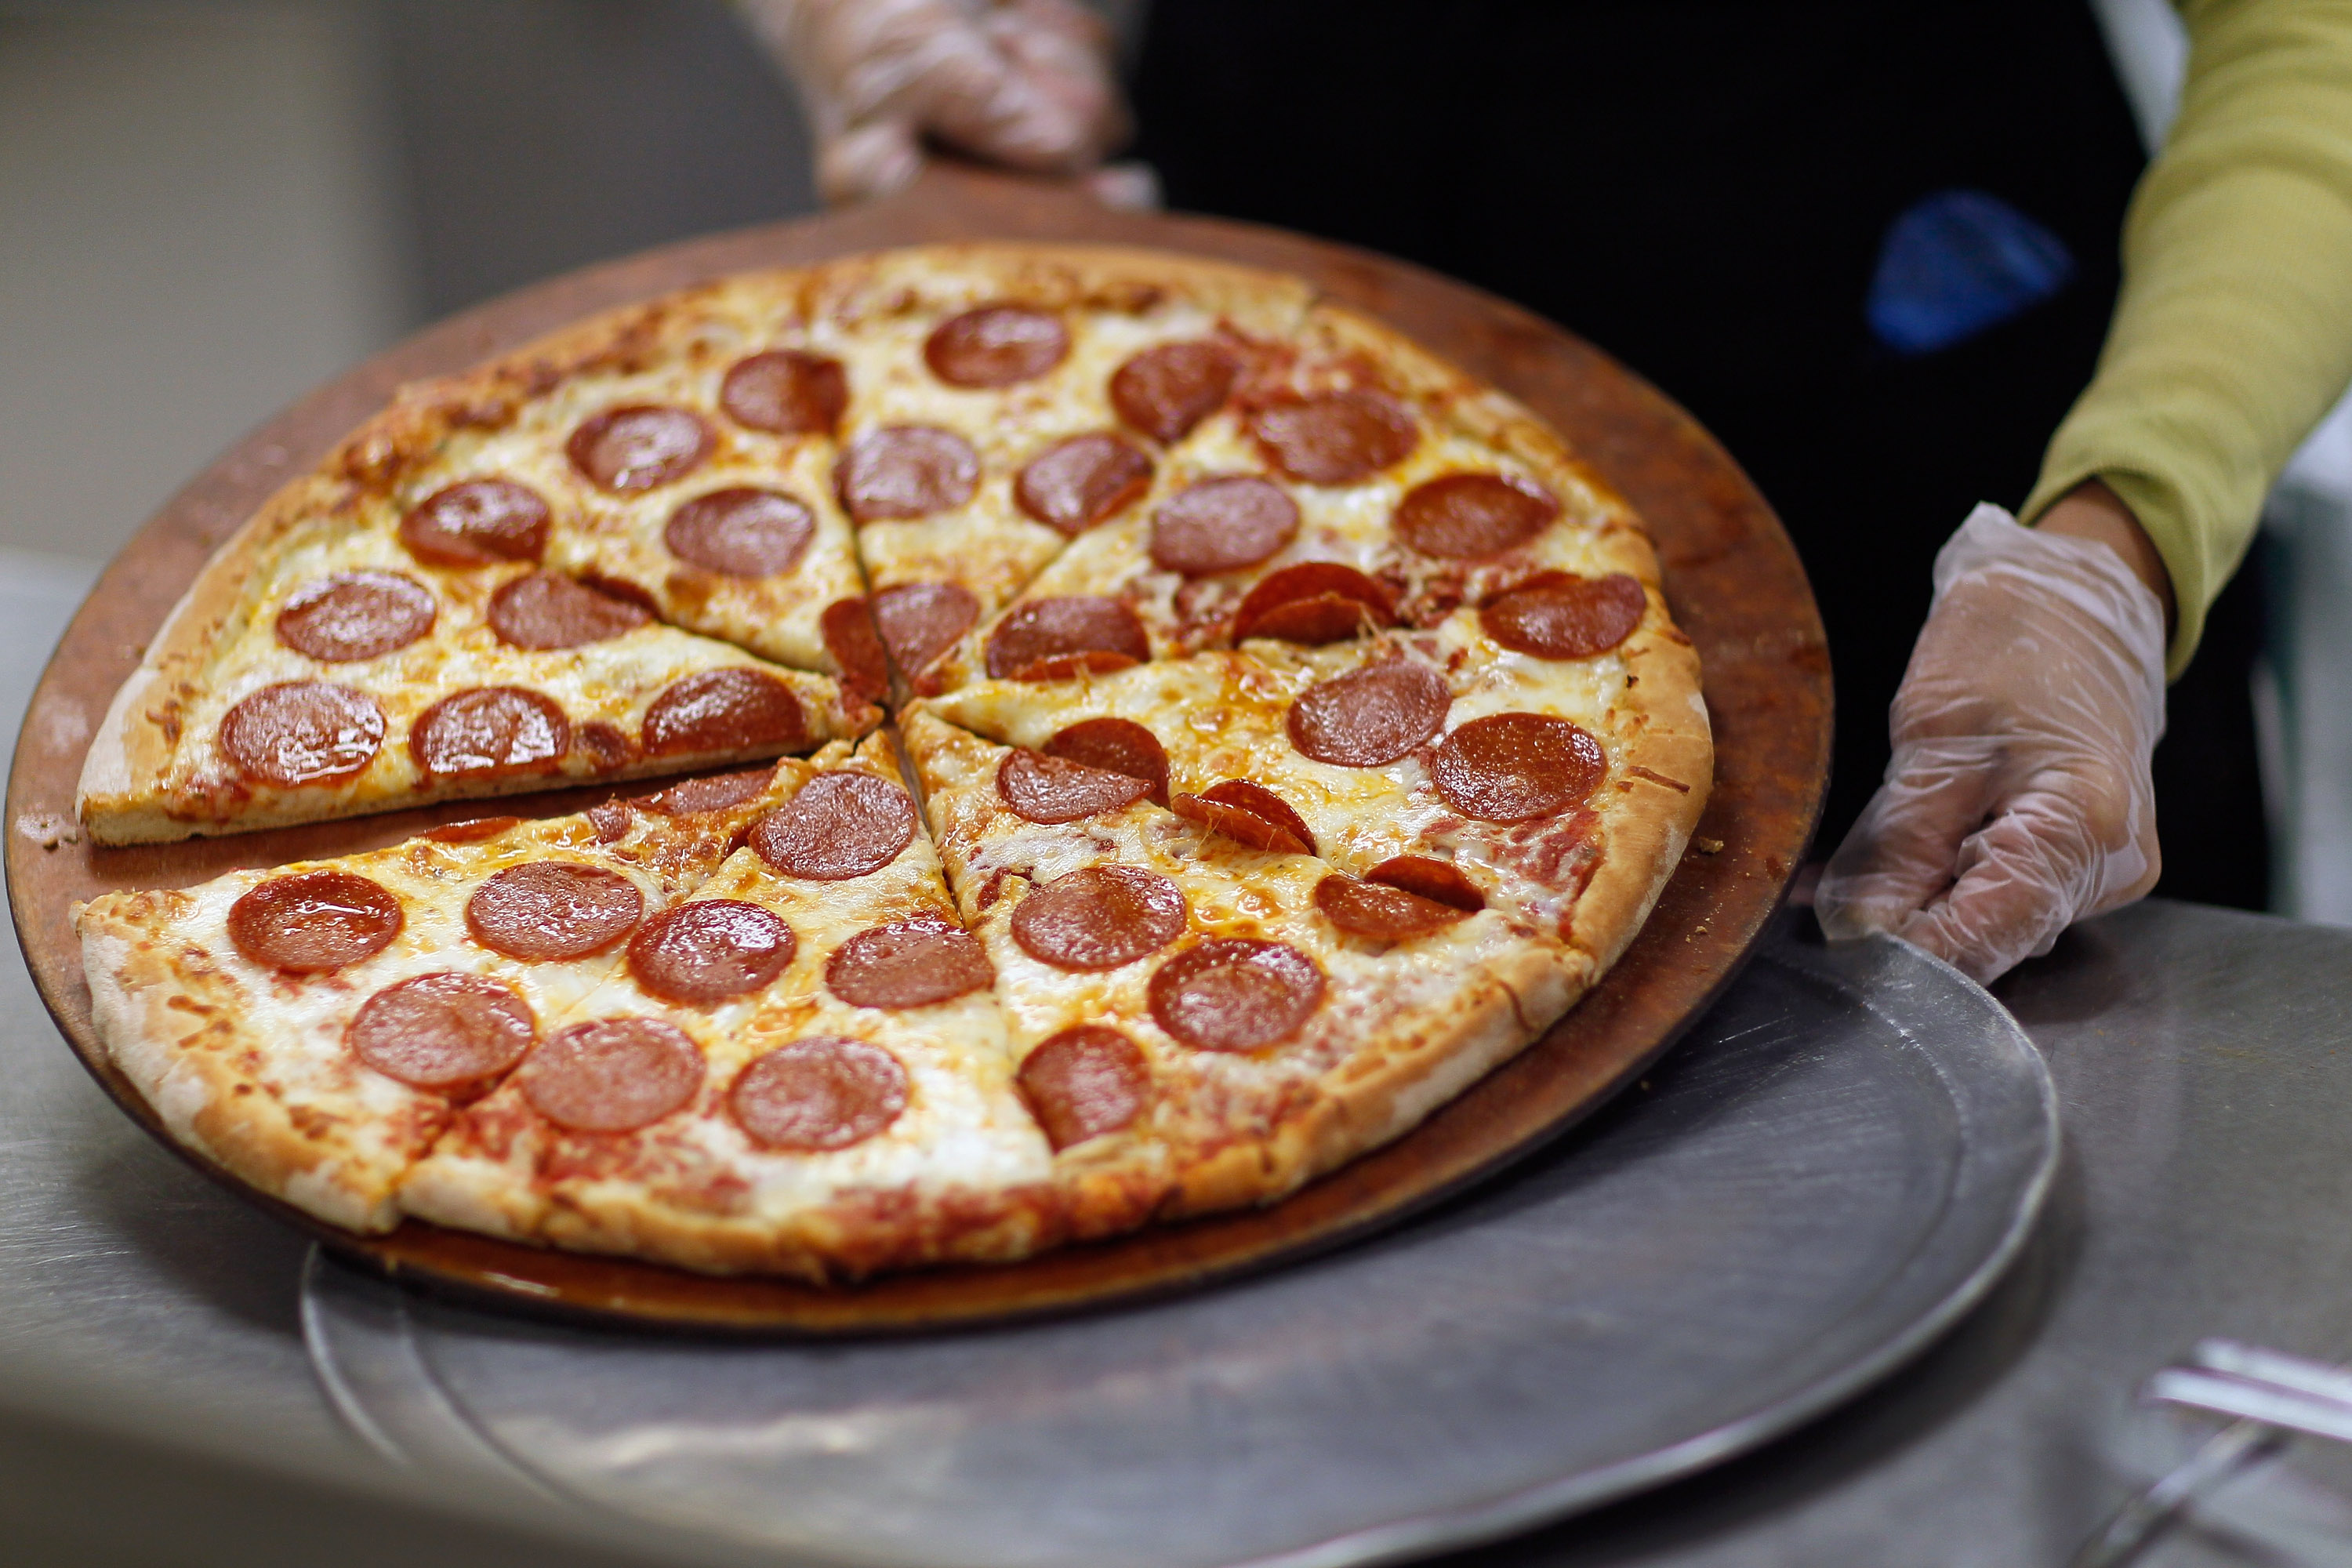 Congress Allows Pizza To Be Considered Vegetable In School Lunches